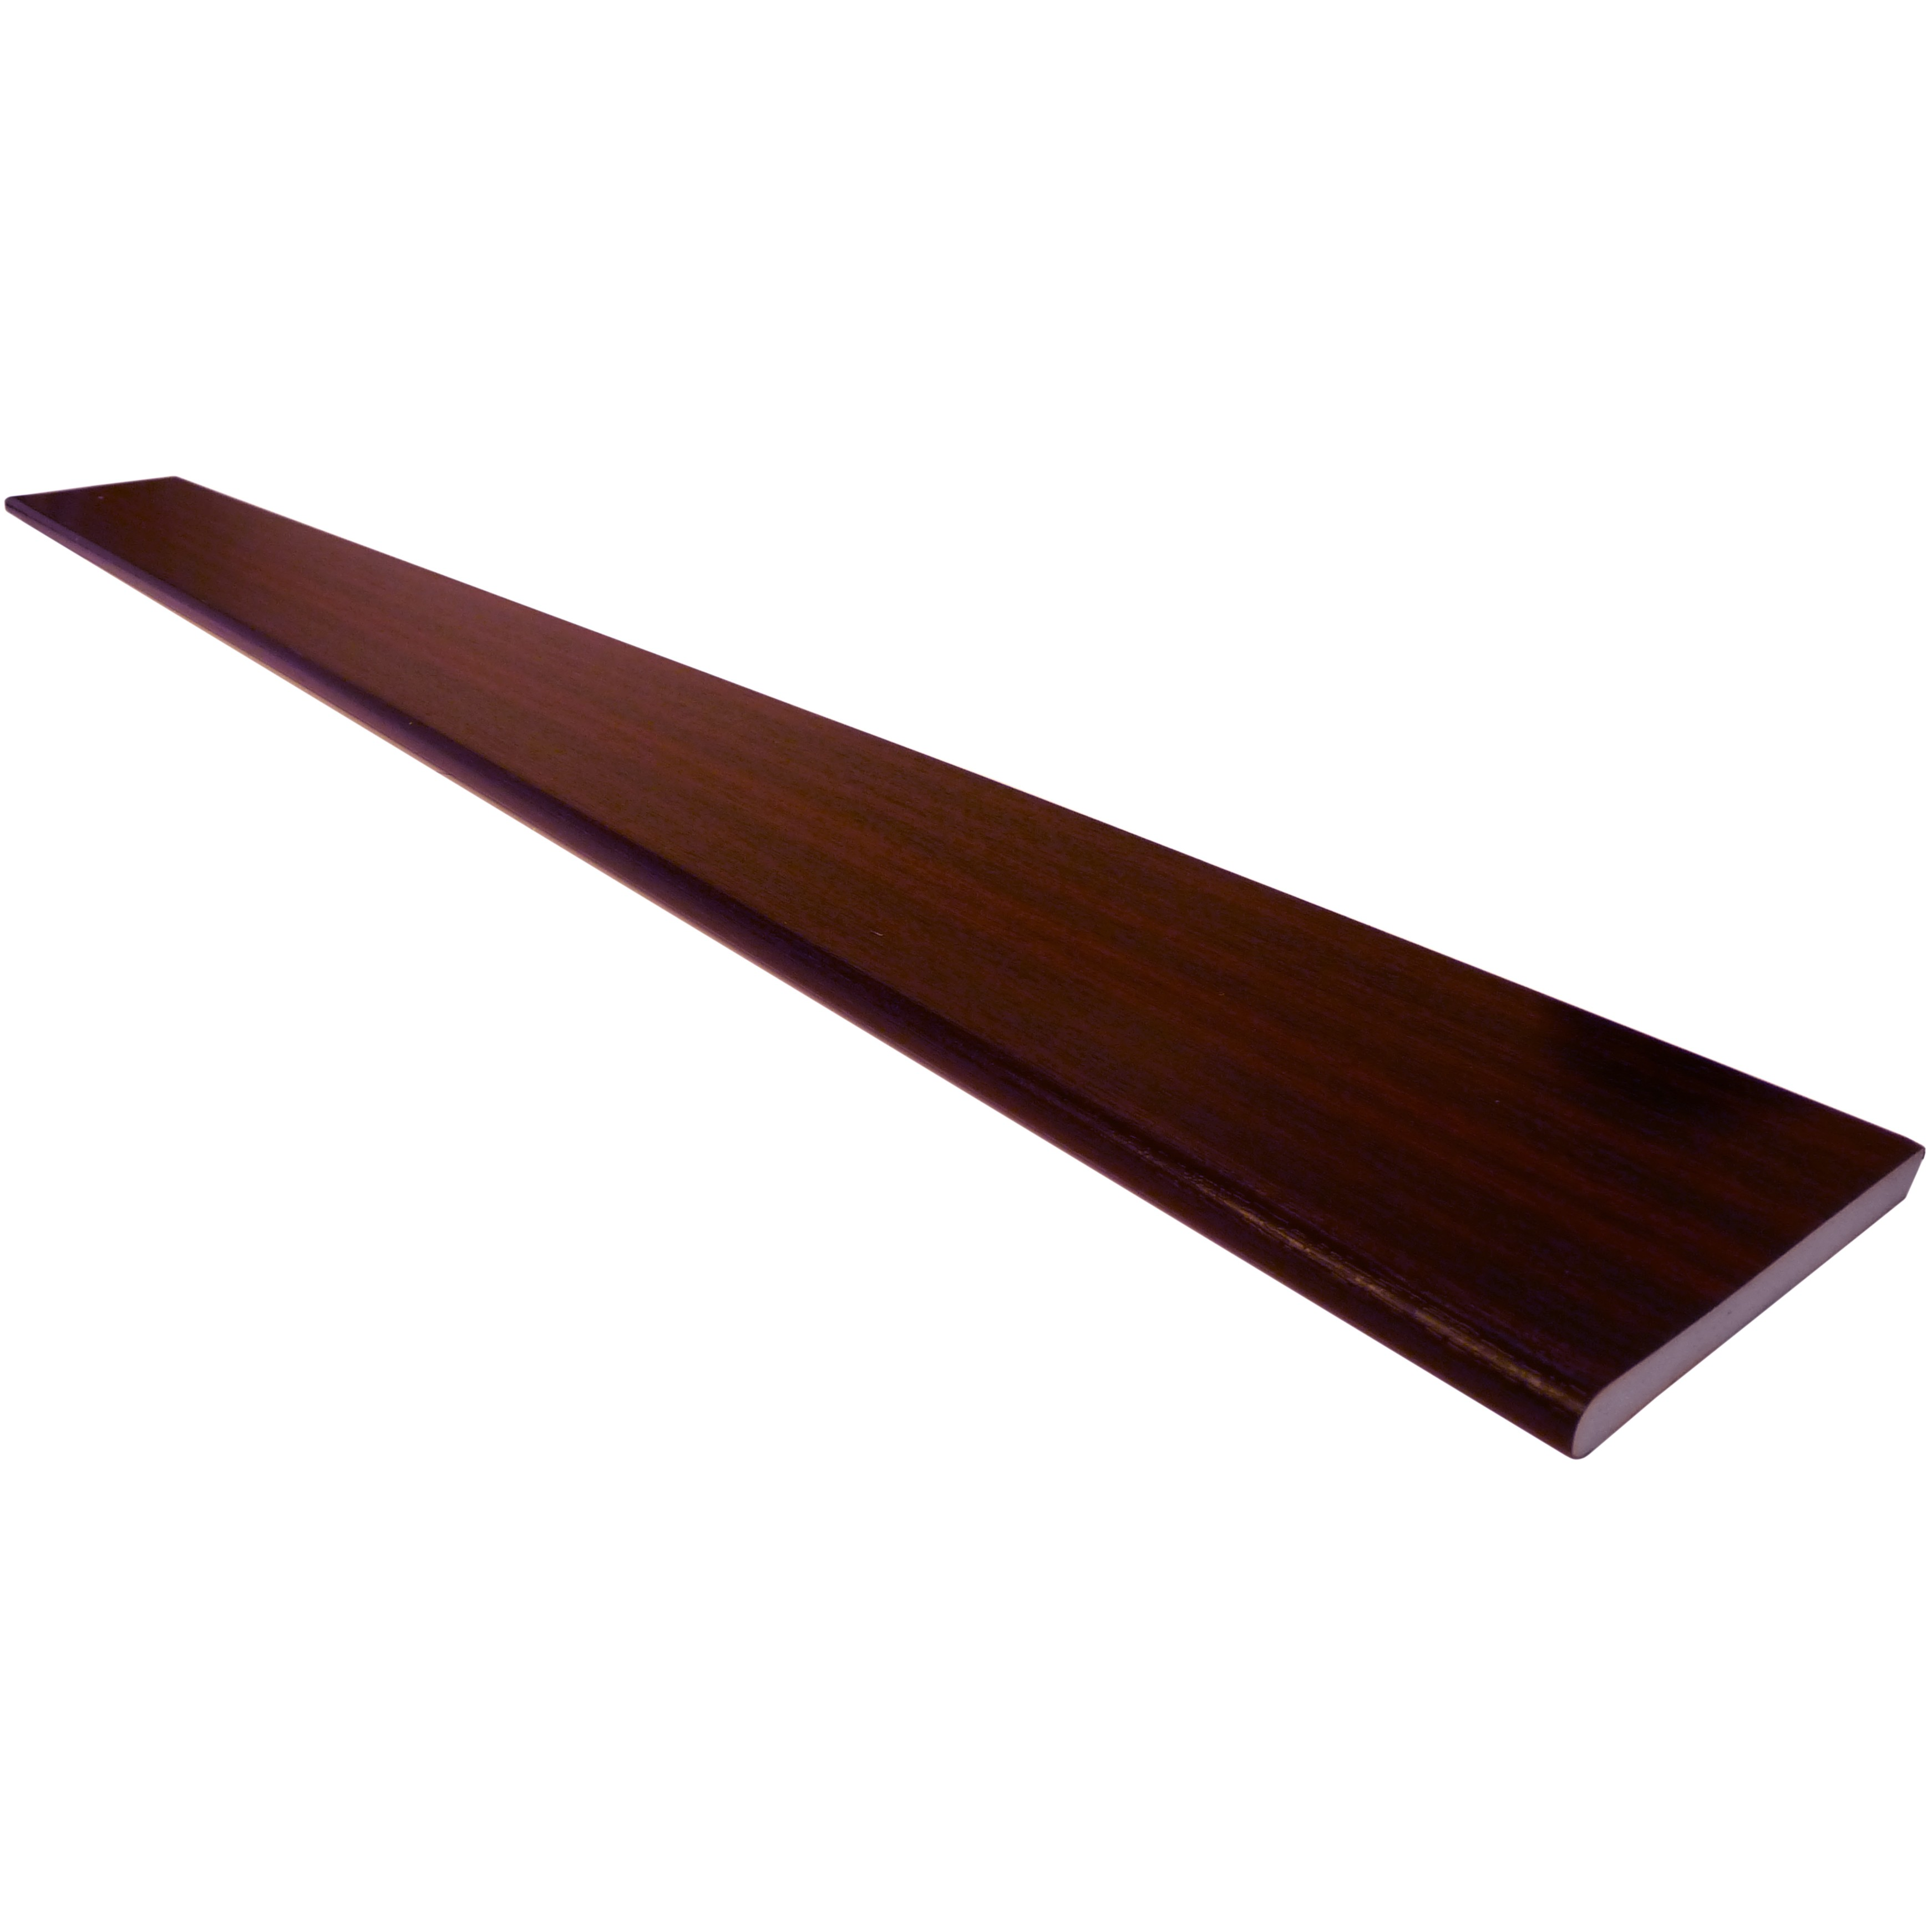 Freefoam 10mm Solid Soffit Board - Woodgrain Mahogany, 225mm, 5 metre